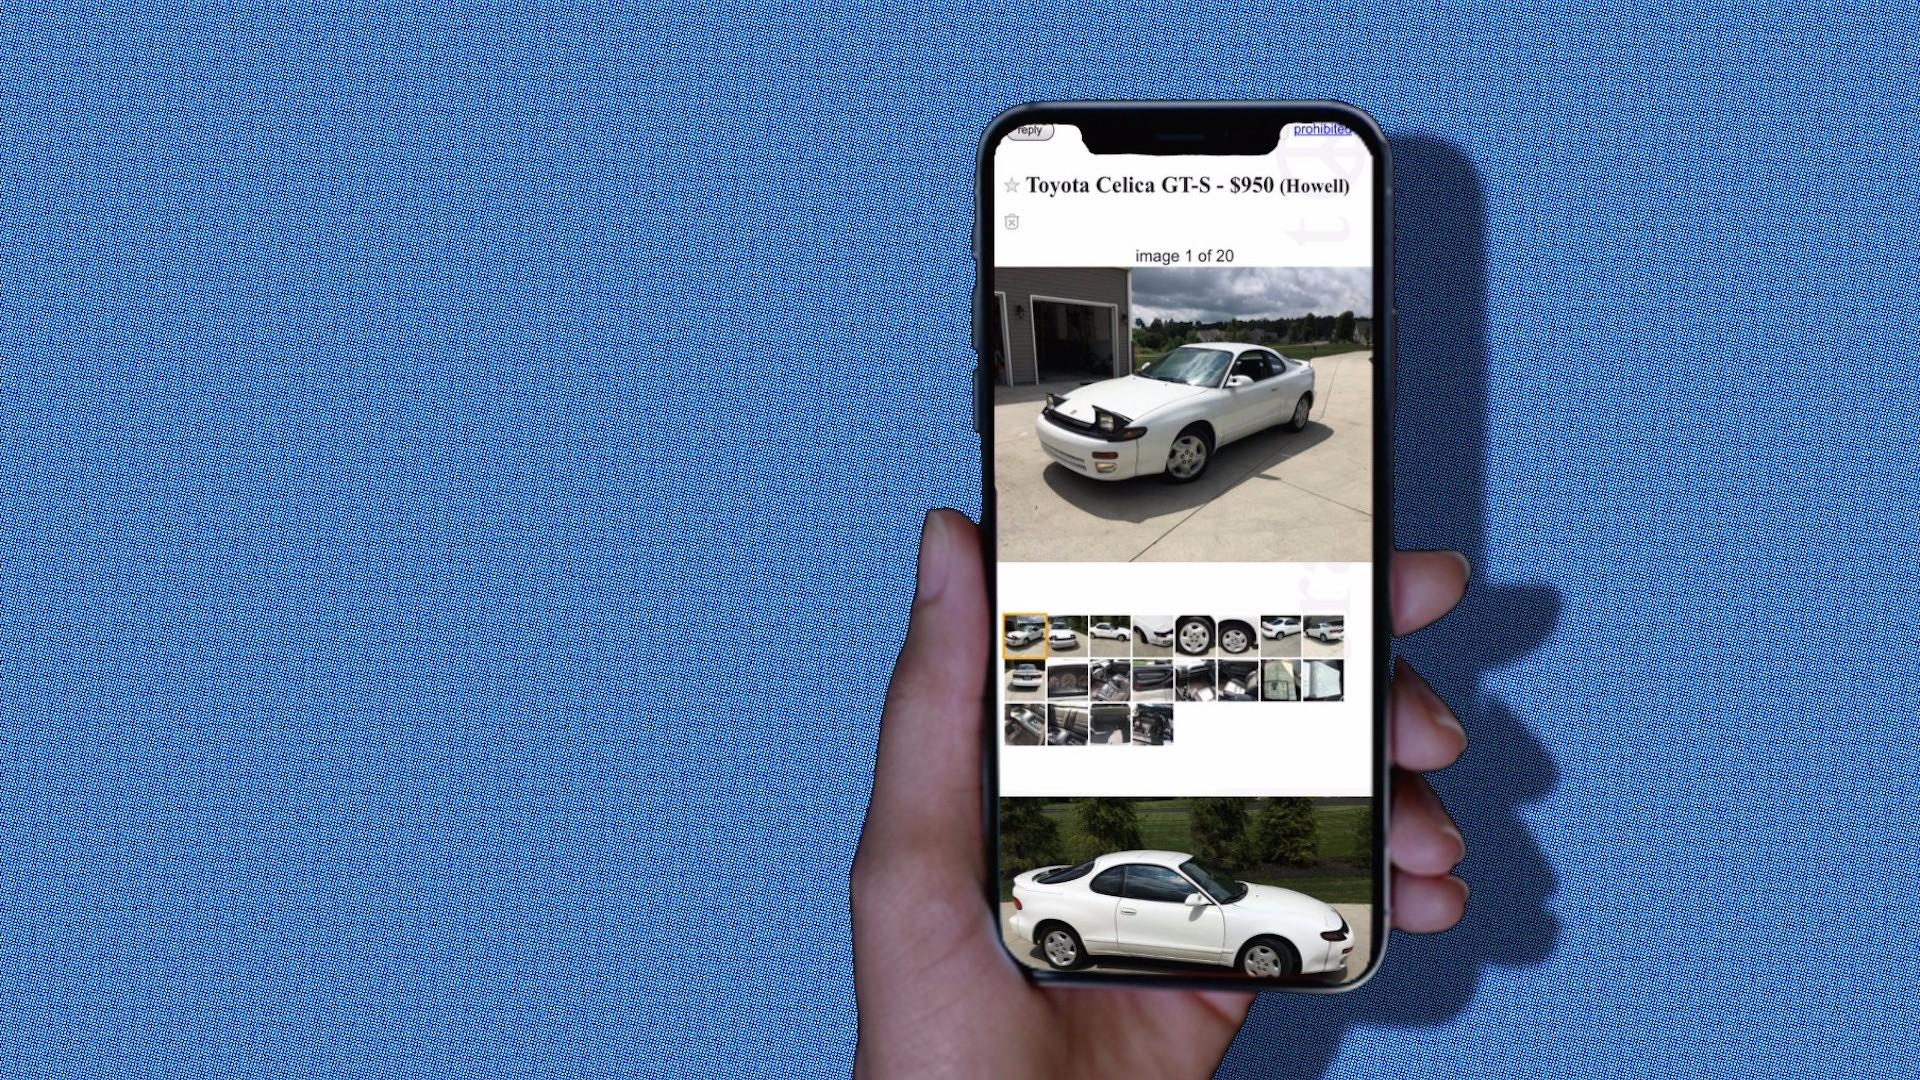 8 Cars Craigslist You Can Buy For The Price An iPhone X